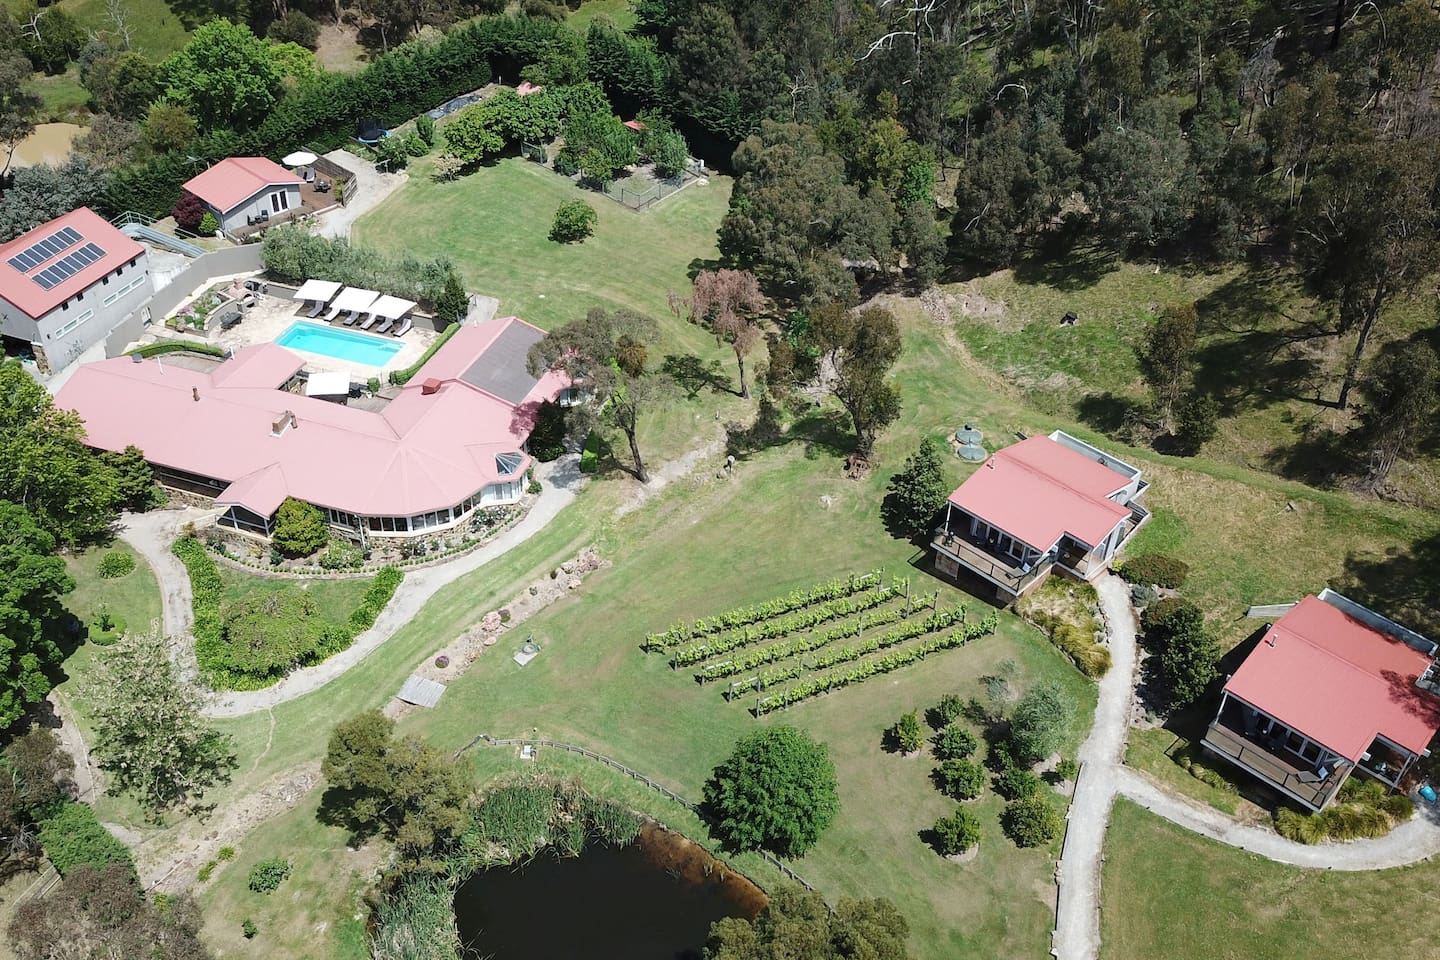 Araluen is a traditional B&B in the Yarra Valley. Property offers 3 self-contained spa villas & a Lodge with 4 rooms, each with private ensuite. Single or group bookings available. Ideal DIY intimate wedding venue or specialists in wedding group acc